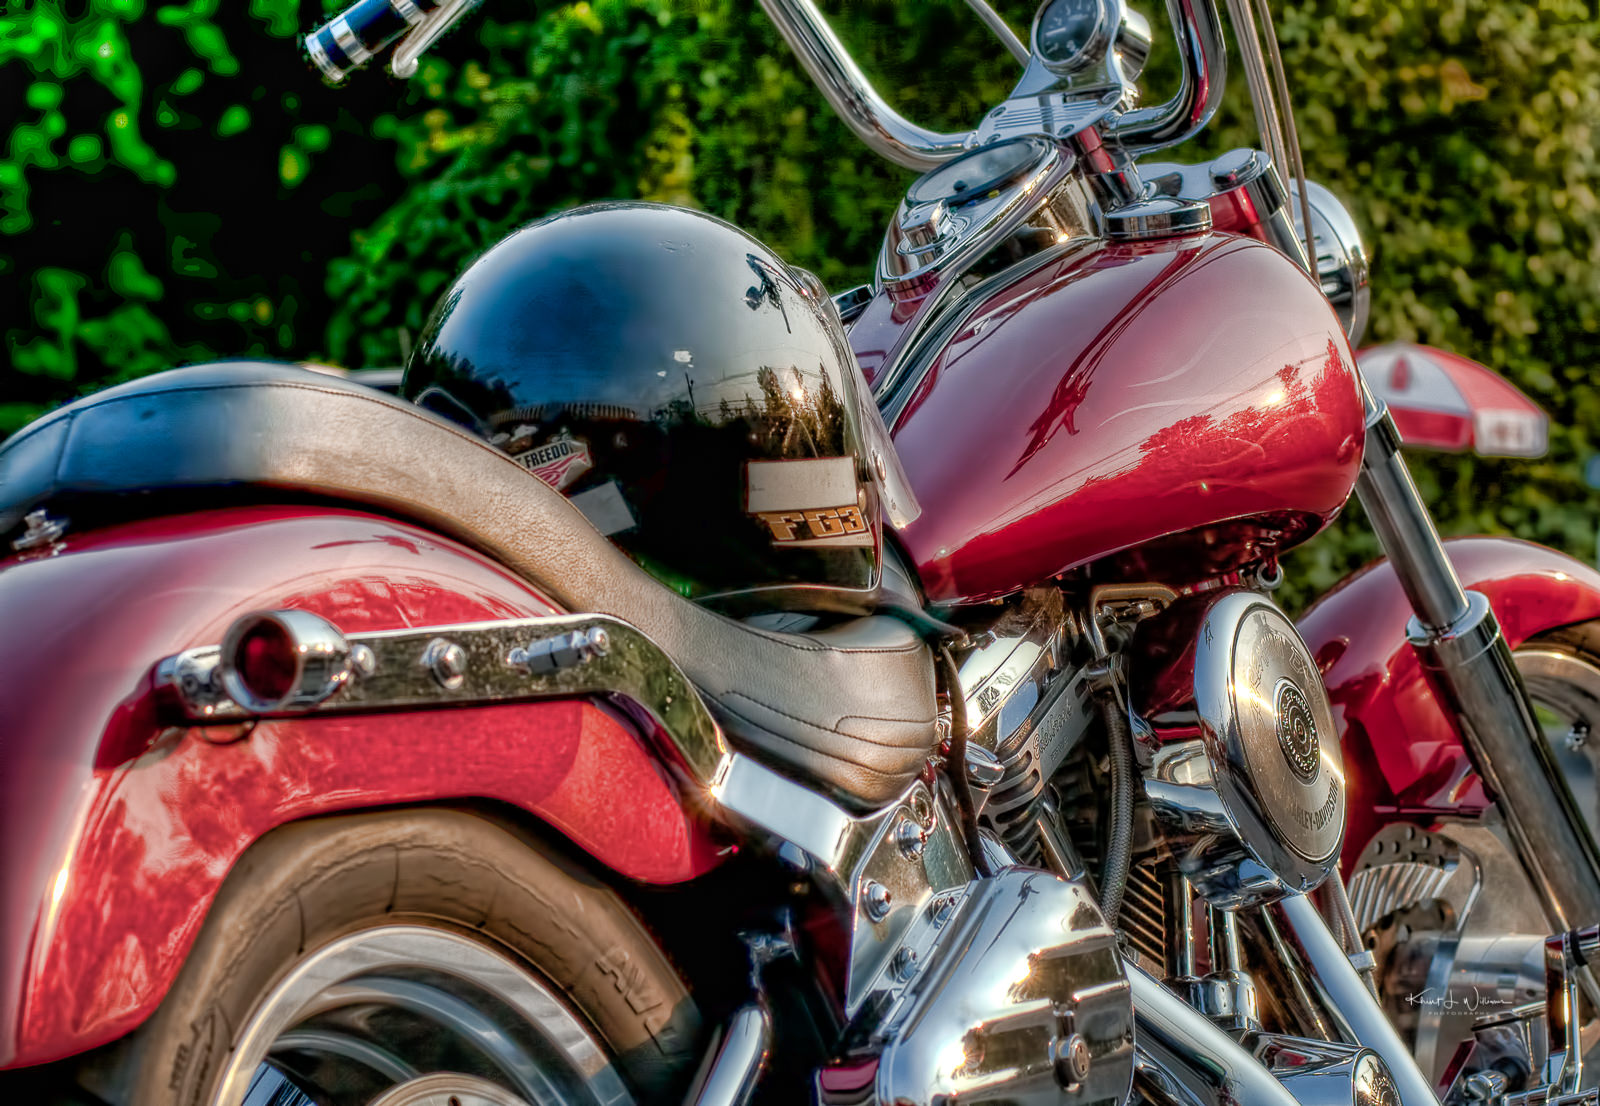 Motorcycle, Red, Princeton, New Jersey